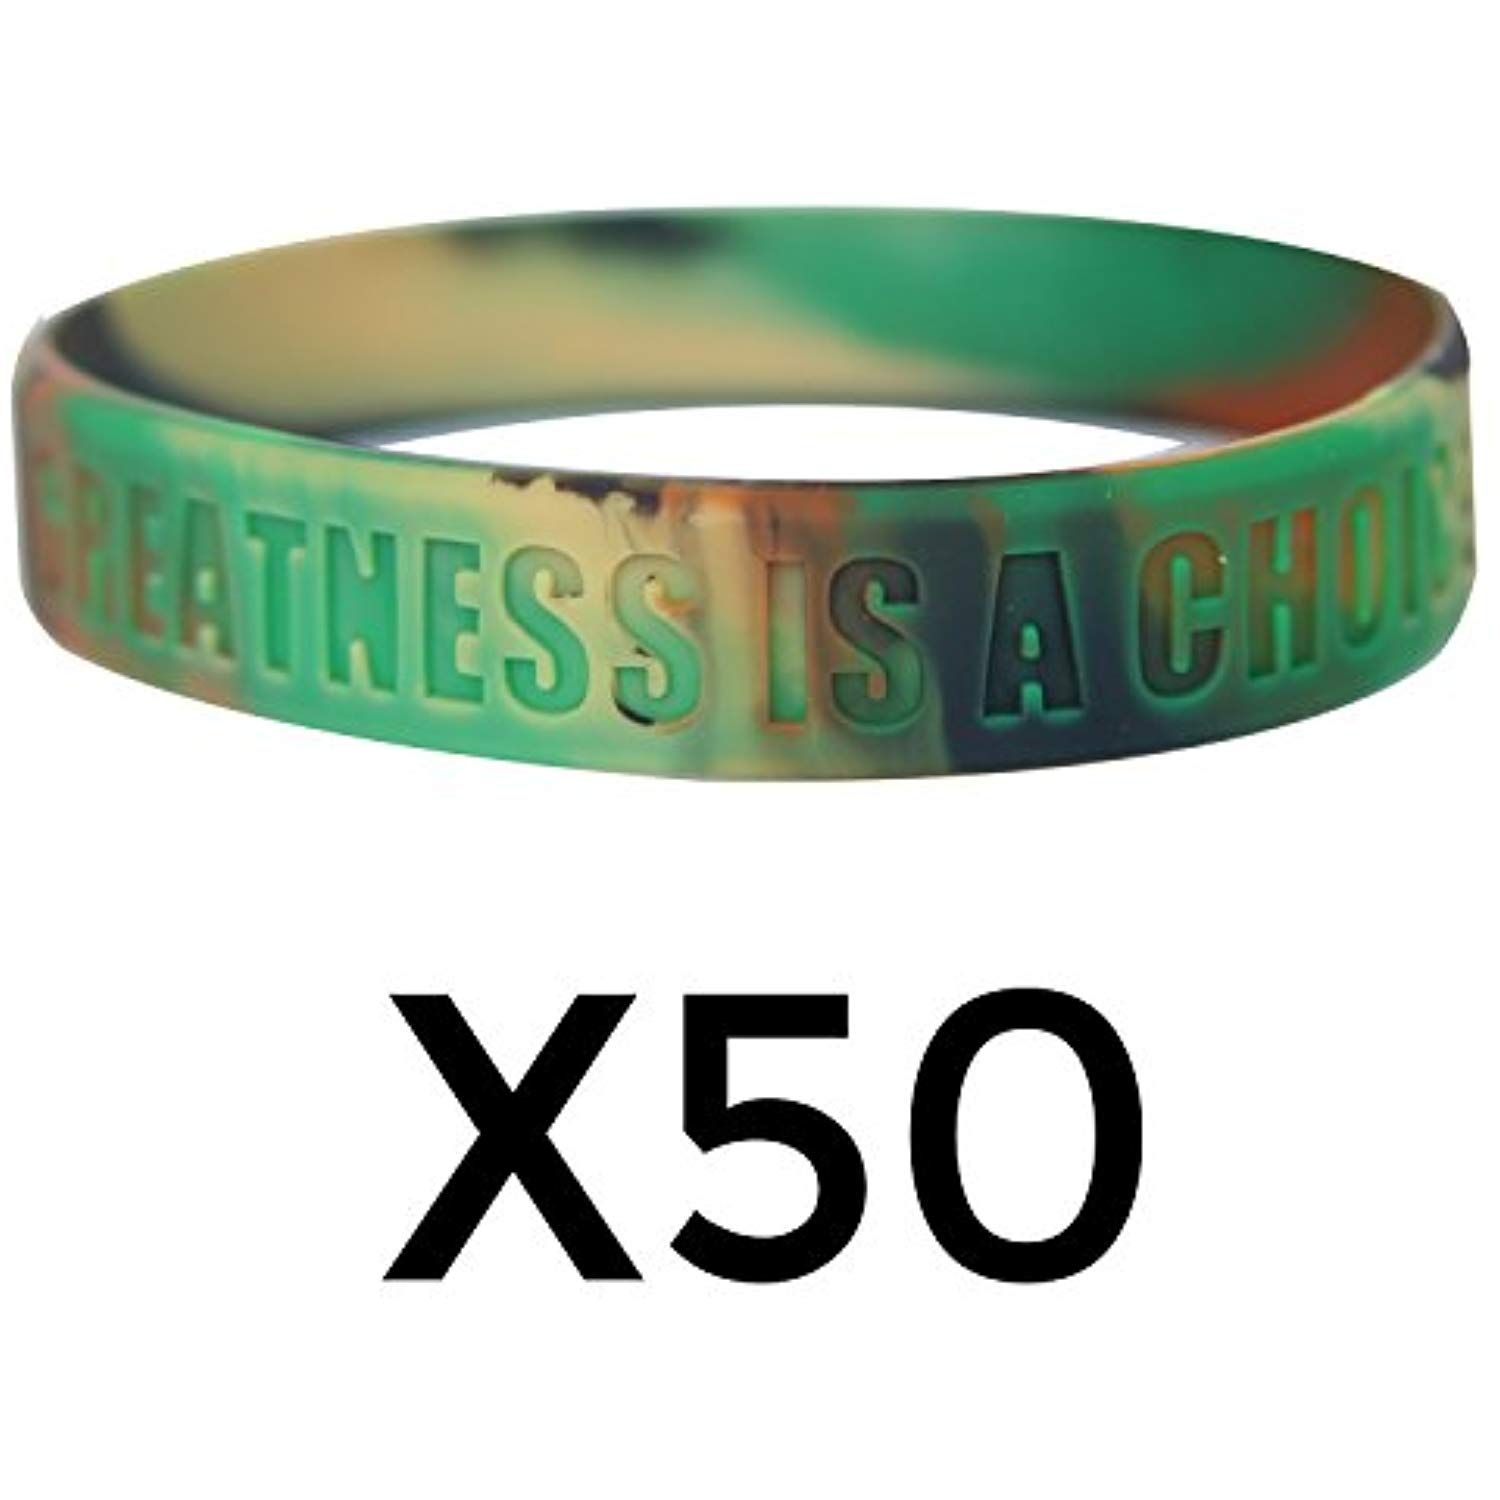 GOMOYO Greatness is a Choice Eight Colors of Inspirational Rubber Bracelets Bulk Options for Teams are Available Create Who You Want to Be Motivational Silicone Wristband with Quote